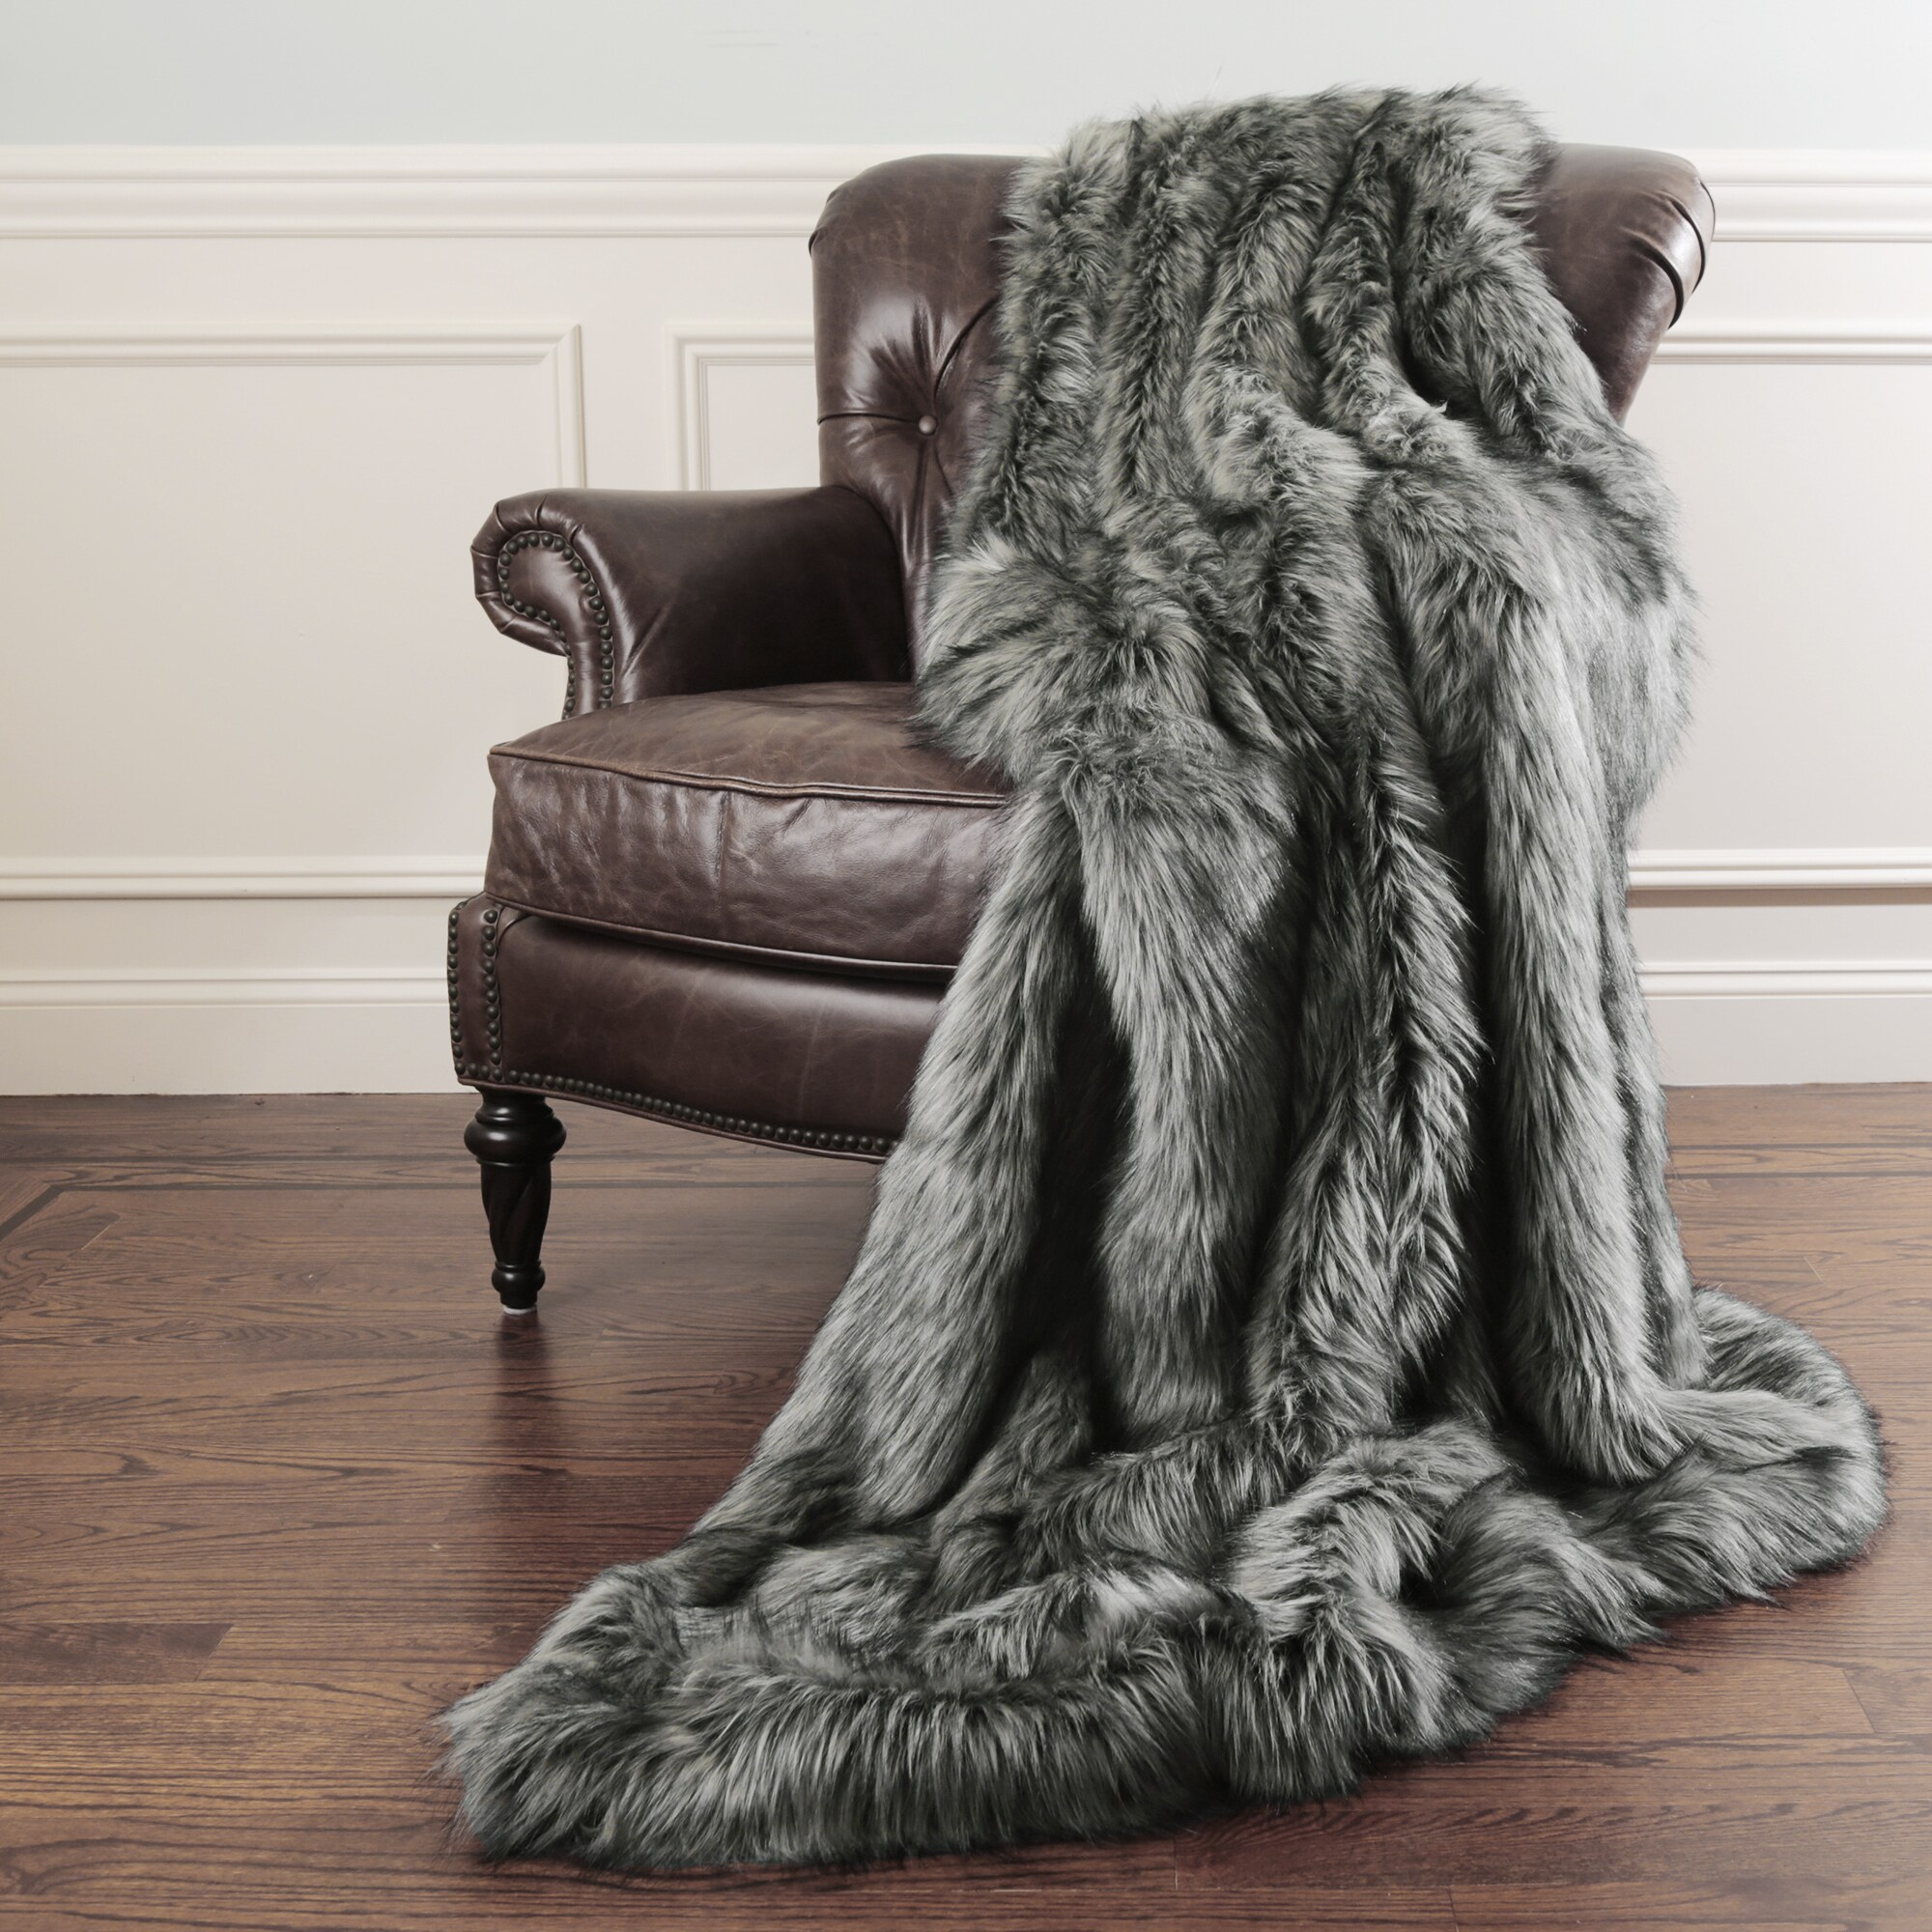 Faux fur throw blanket White Shop Aurora Home Faux Fur Throw Blankets By Wild Mannered Free Shipping Today Overstockcom 10649736 Overstock Shop Aurora Home Faux Fur Throw Blankets By Wild Mannered Free